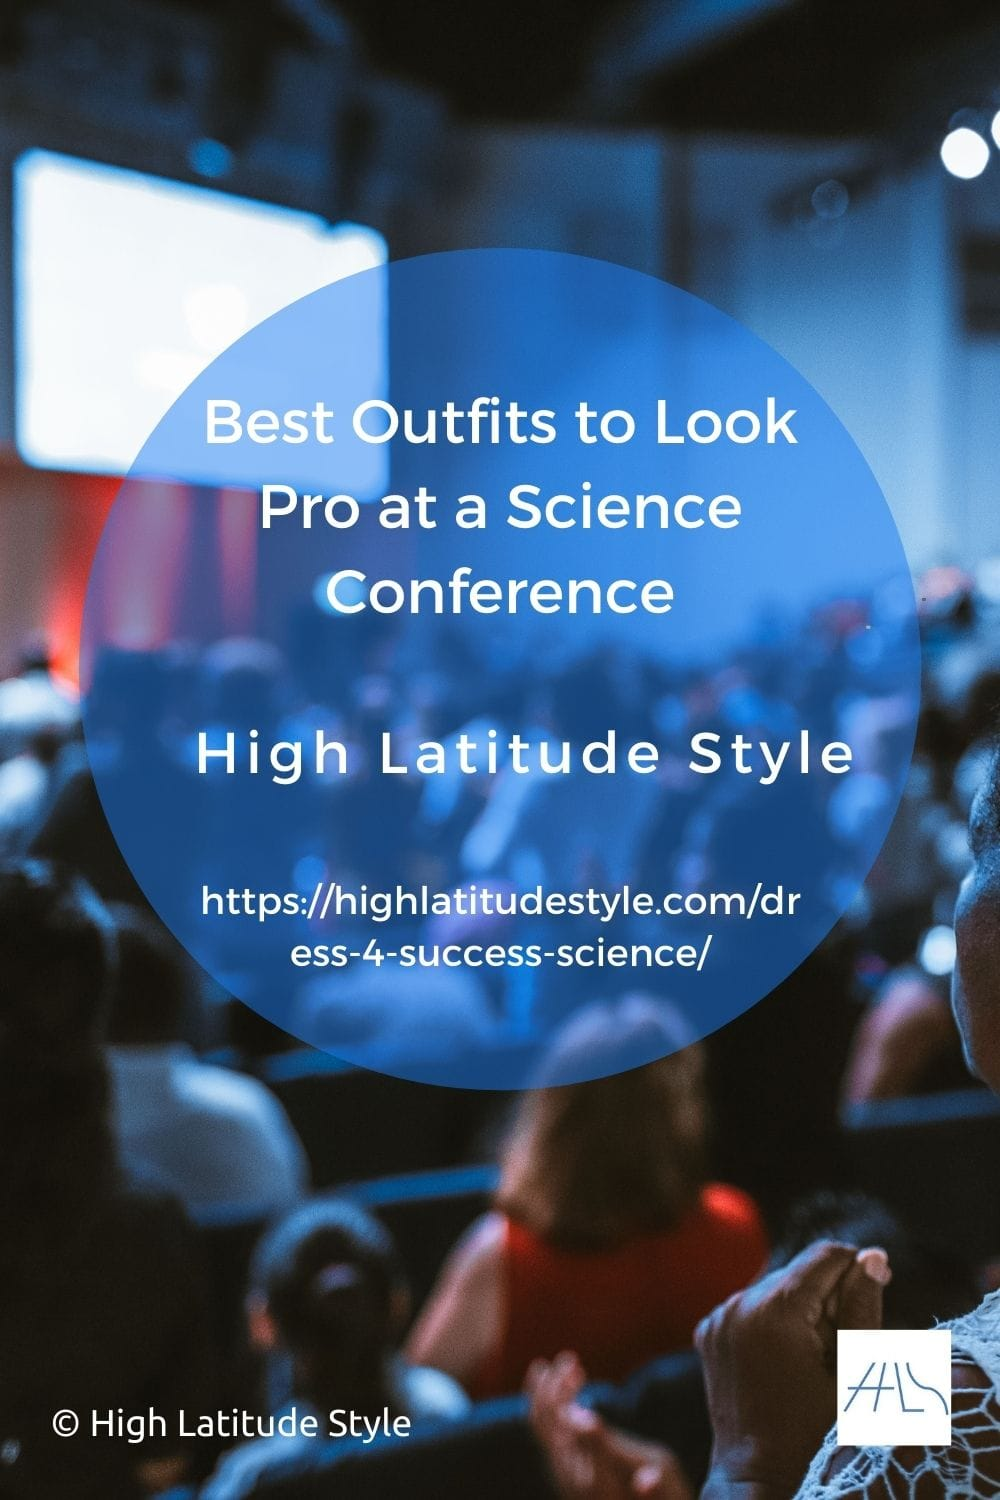 Best Outfits to Look Pro at a Science Conference